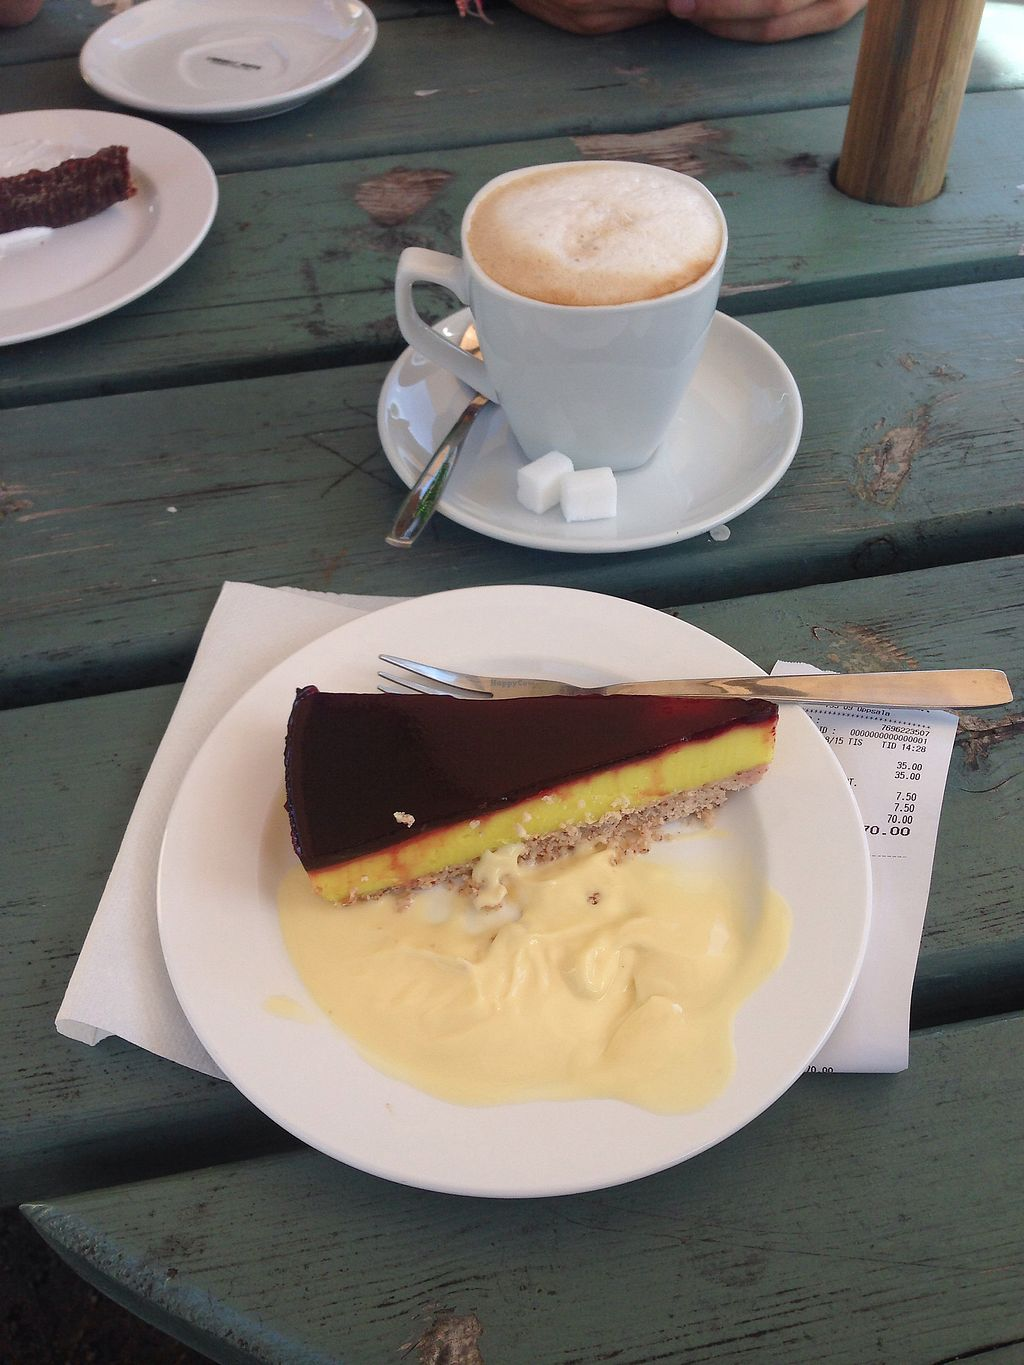 "Photo of Parksnackan  by <a href=""/members/profile/SophieNZ"">SophieNZ</a> <br/>Lemon curd cake with vanilla sauce and an Oatly cappuccino. Both delicious <br/> January 13, 2018  - <a href='/contact/abuse/image/94060/346094'>Report</a>"